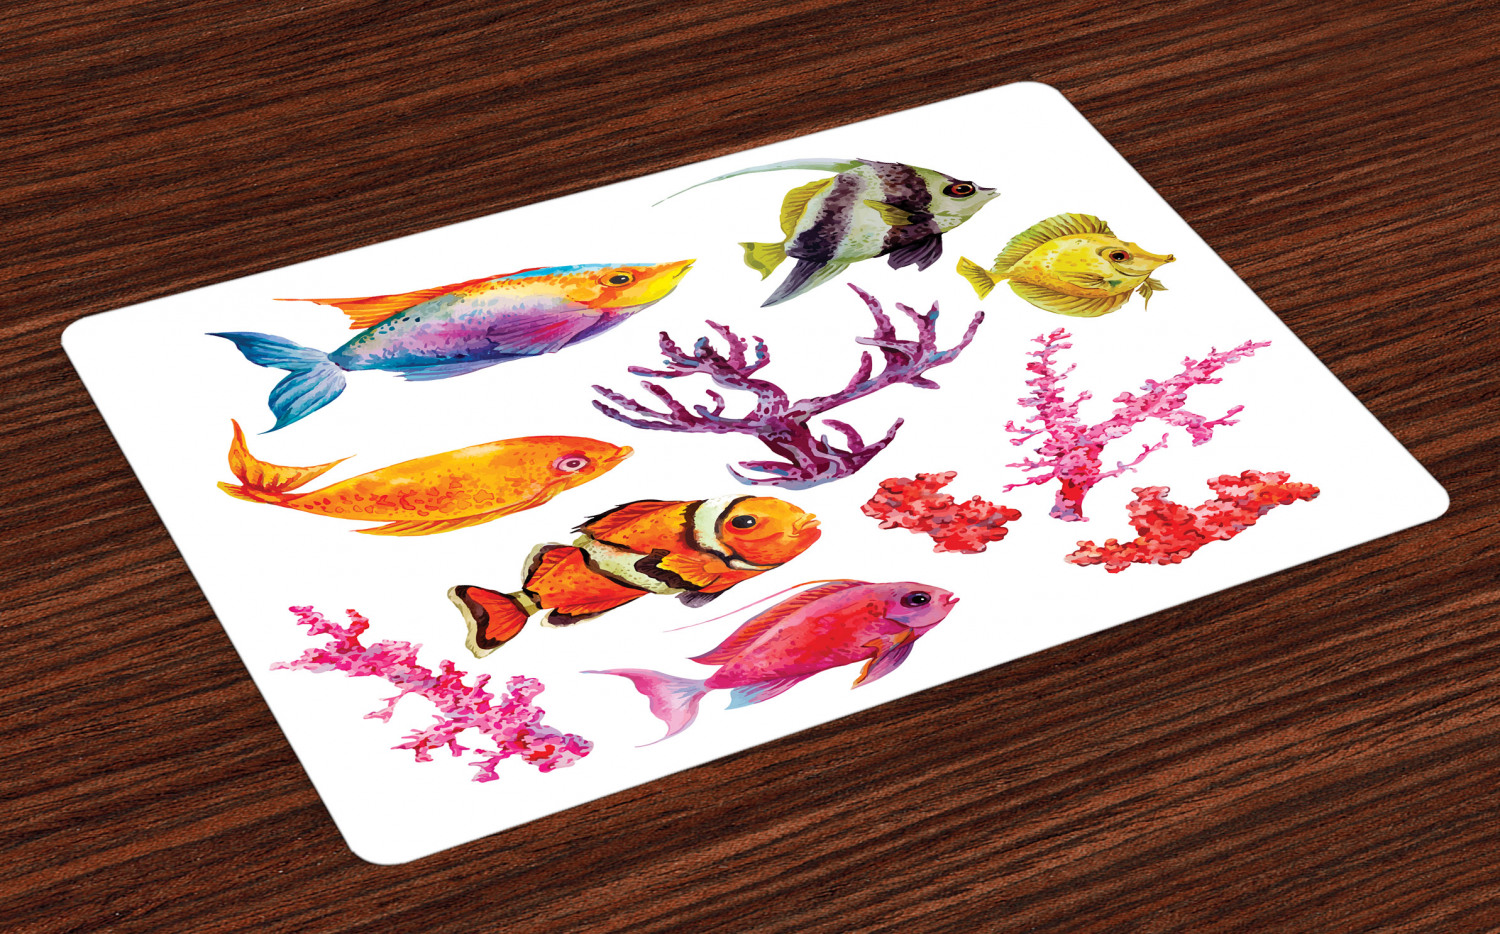 Fish Placemat Mealtime Placemat Set Of 3 Ocean Placemat Pirates Placemat Boys Personalized Ocean Placemats Great Birthday Gift